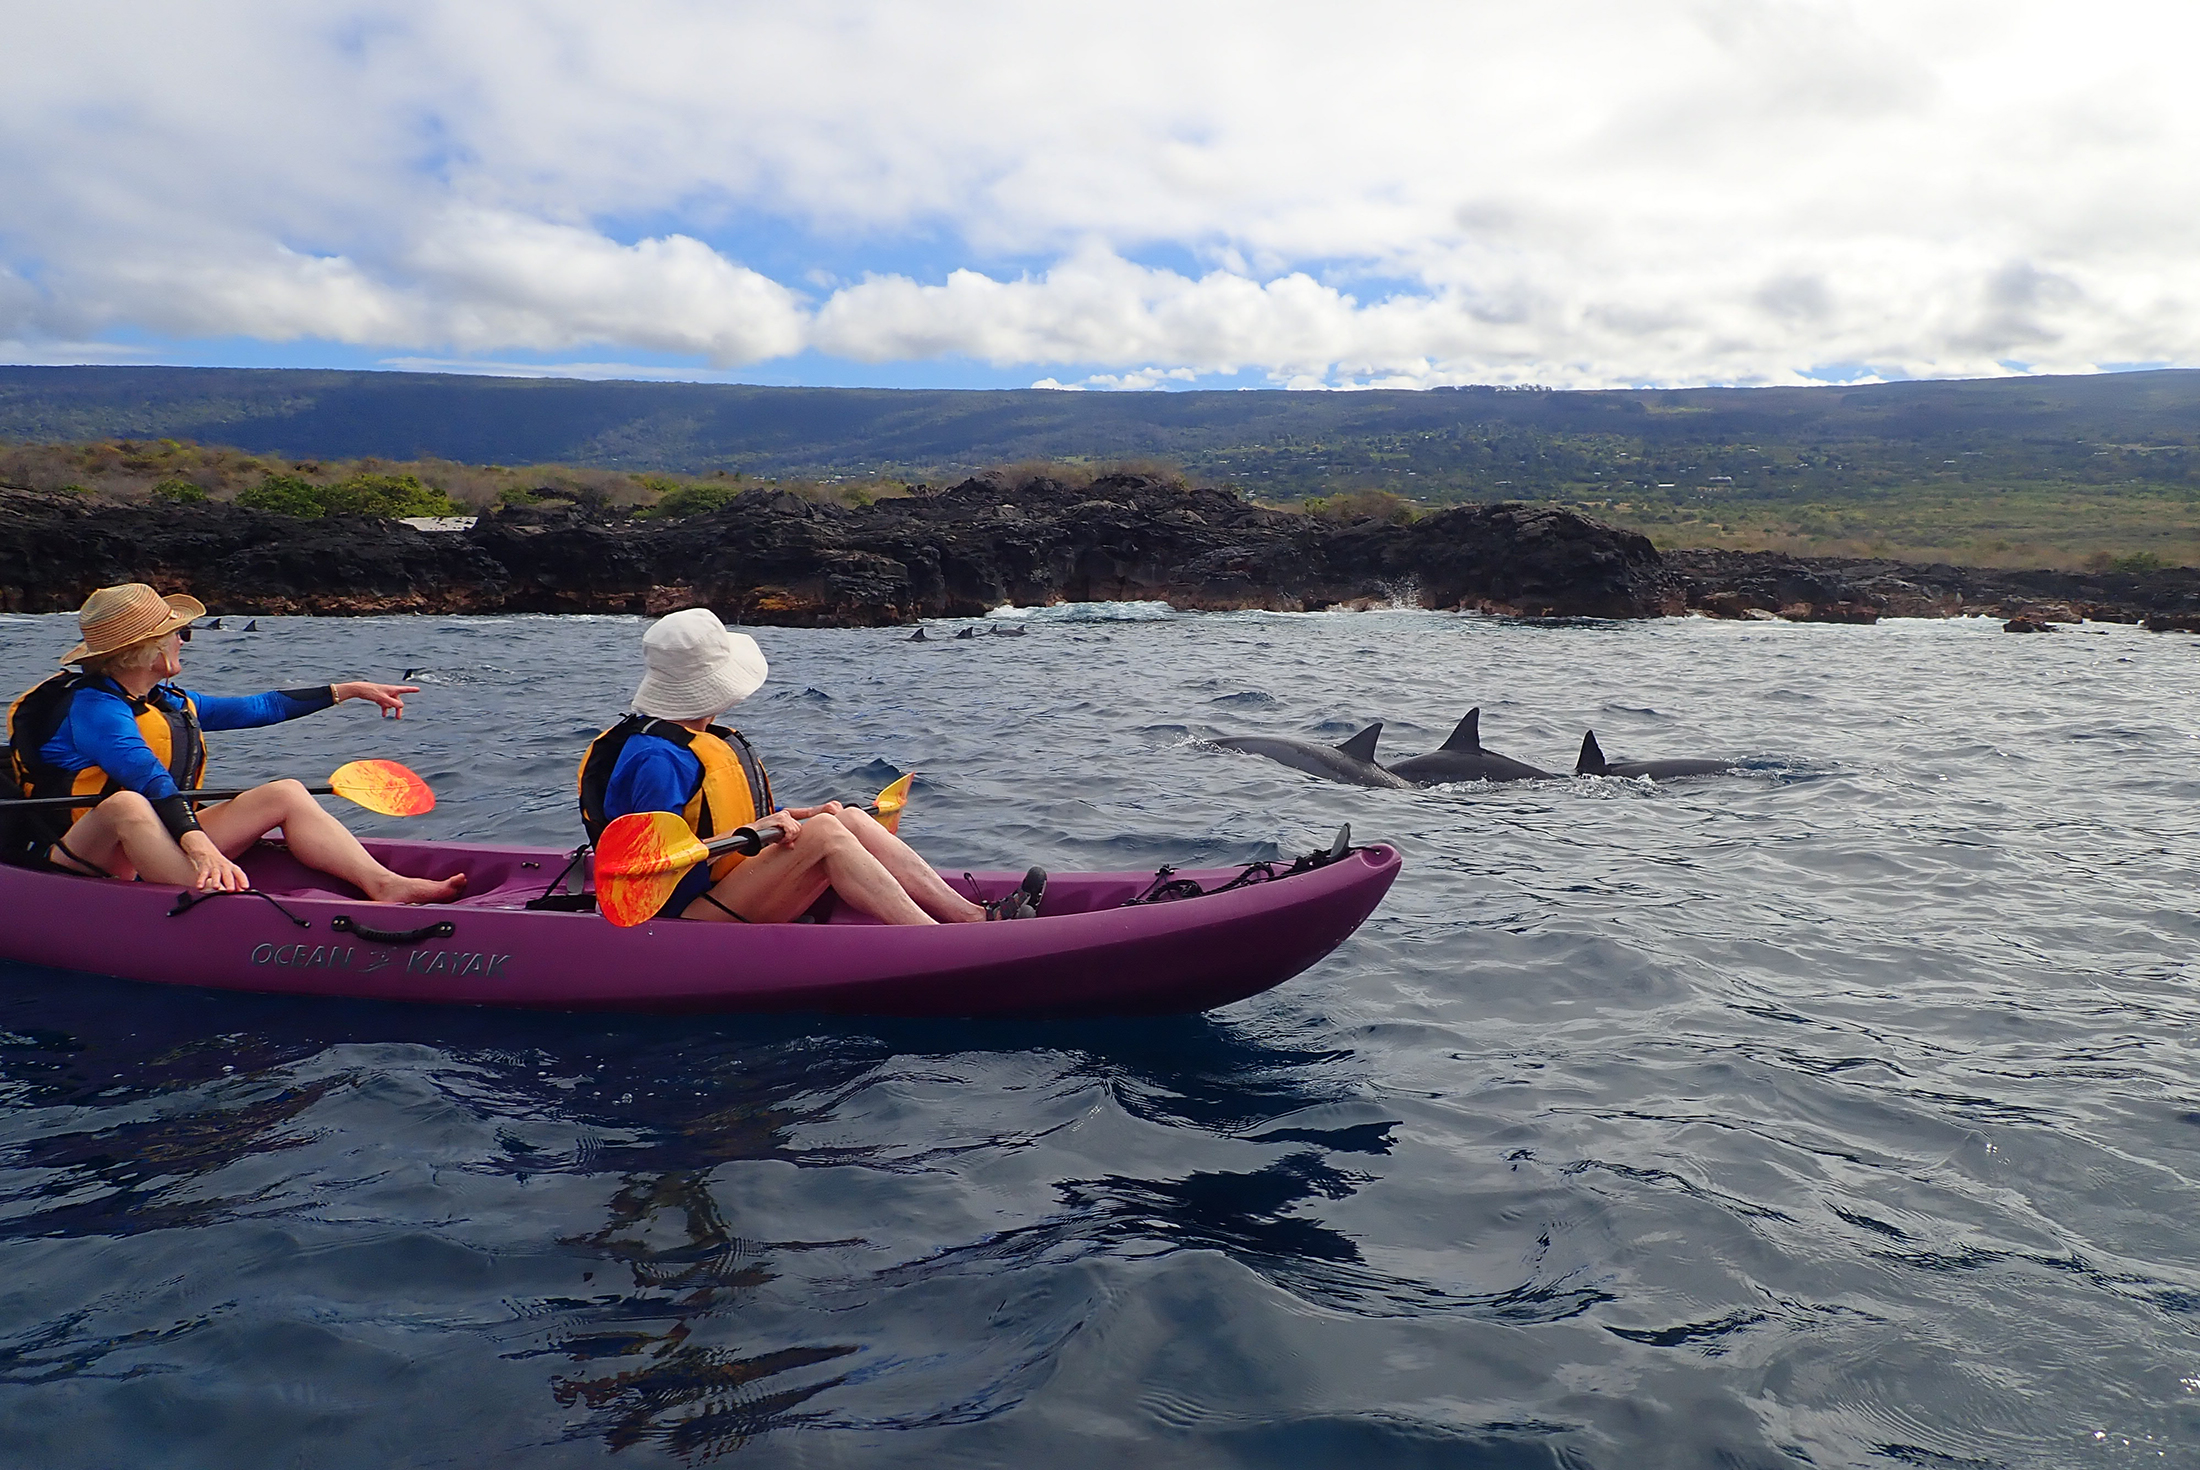 2200x1470-HI-UnCruise-kayakers-spotting-dolphins-Hawaii.jpg